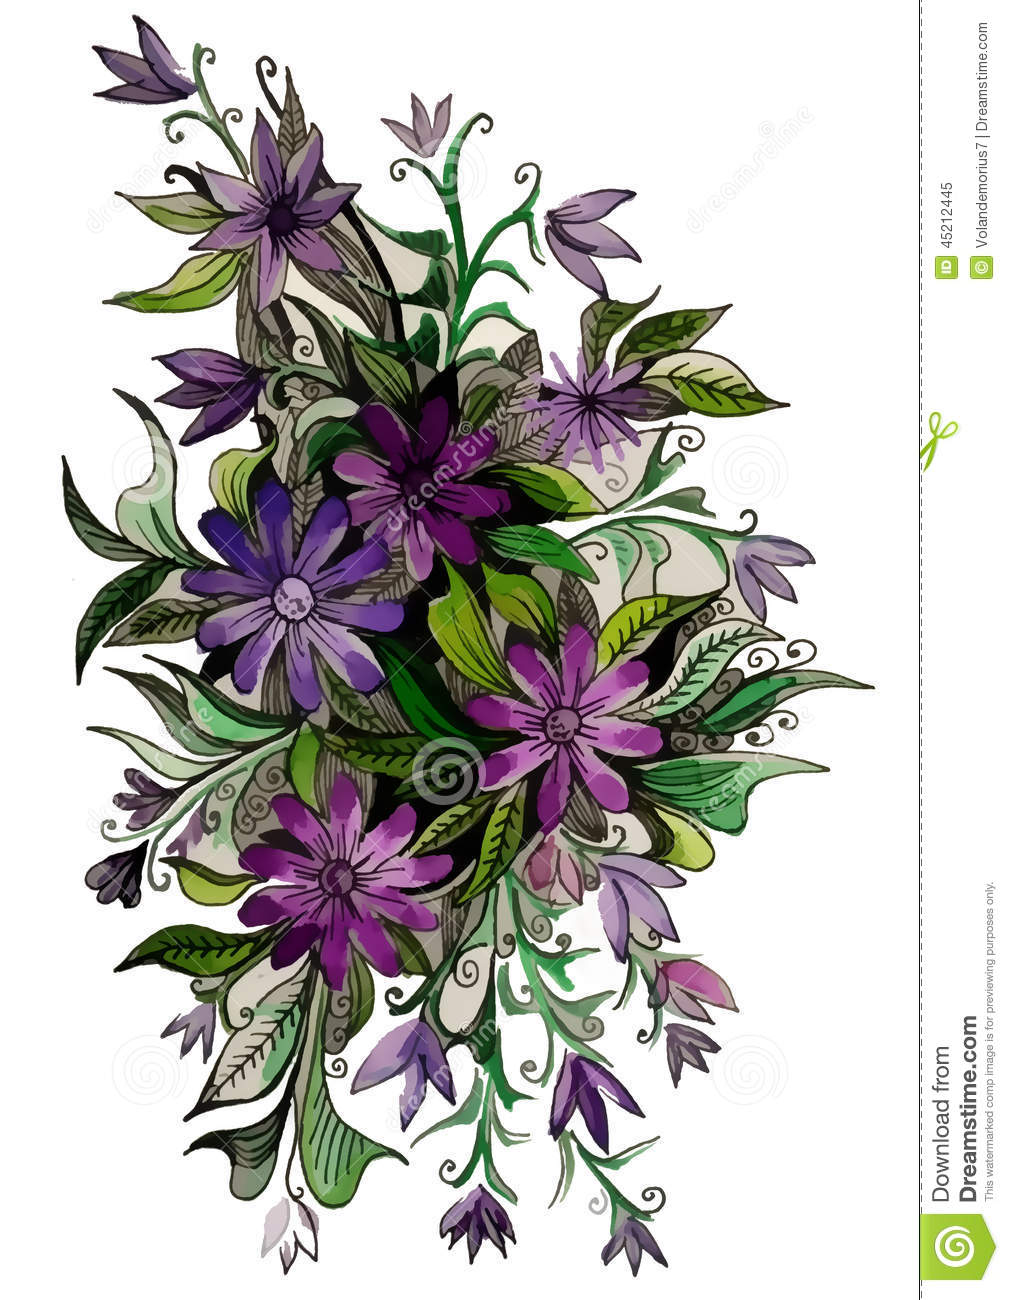 Beautiful flowers of different colors stock illustration for What makes flowers different colors